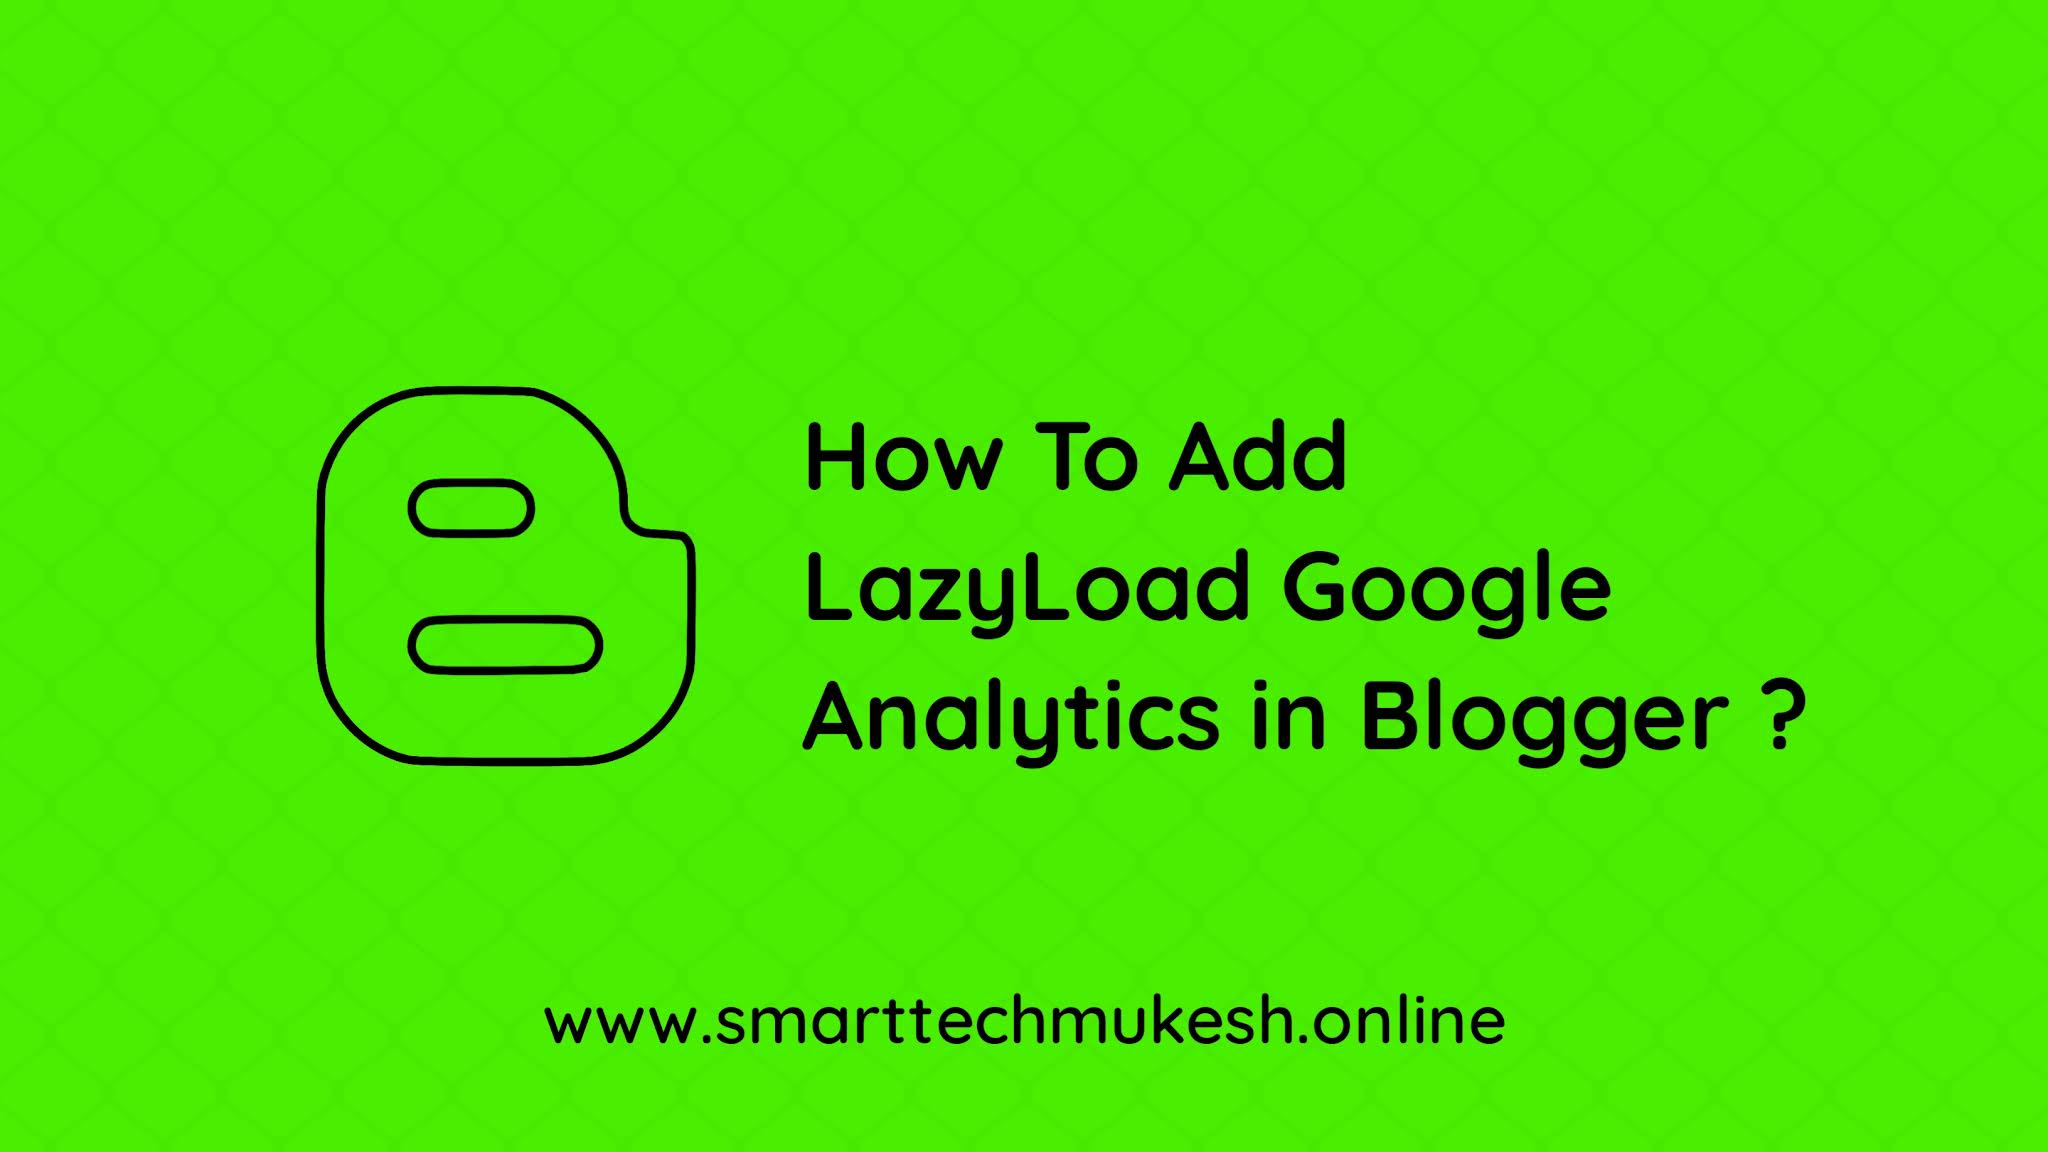 How To Add LazyLoad Google Analytics in Blogger